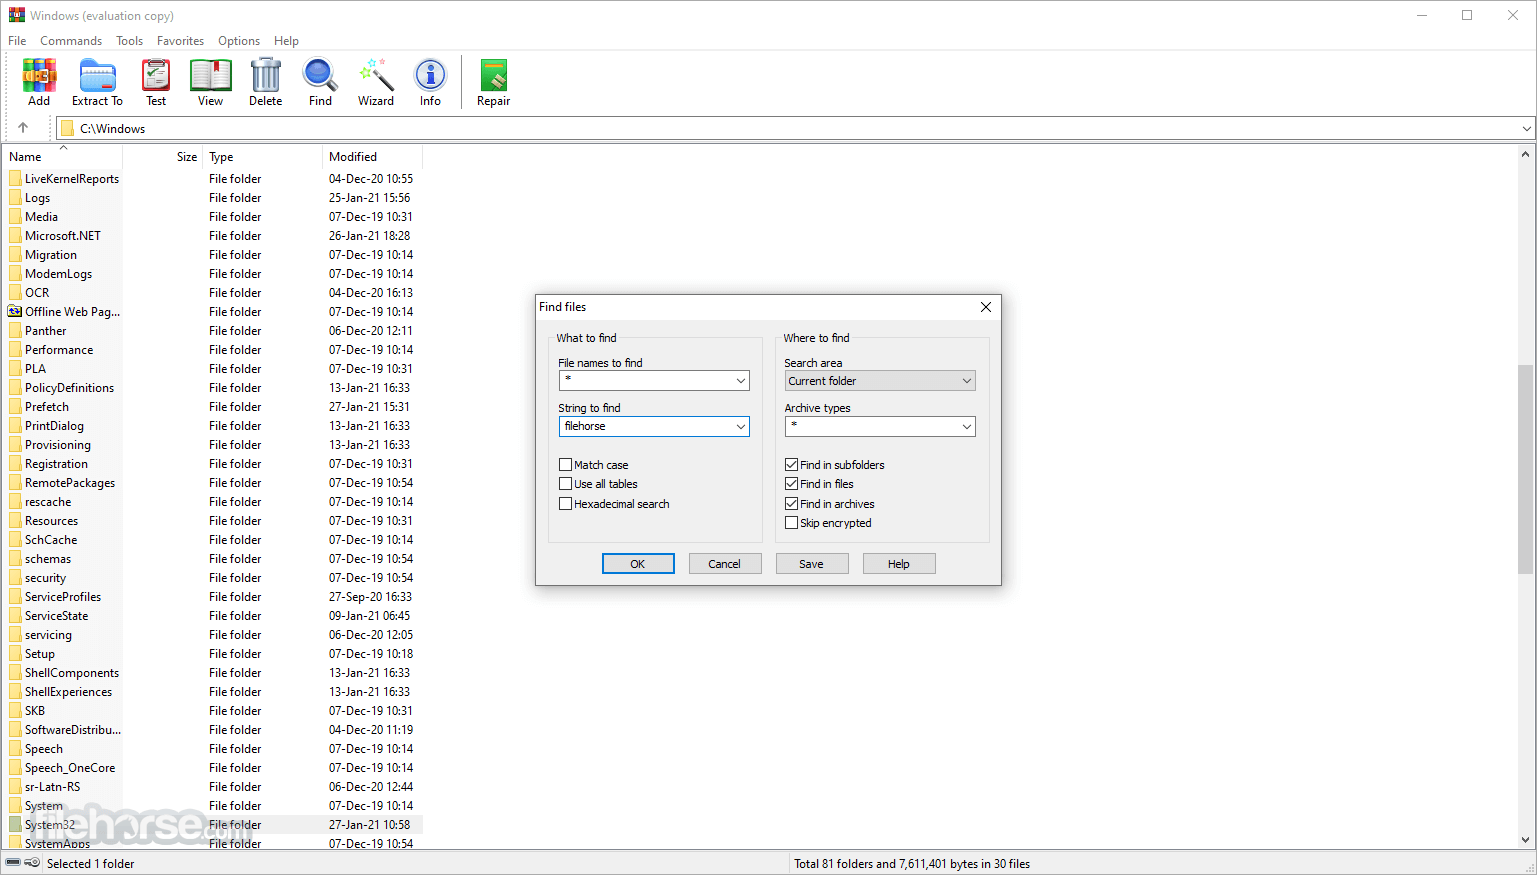 WinRAR 5.61 Beta 1 (32-bit) Screenshot 3